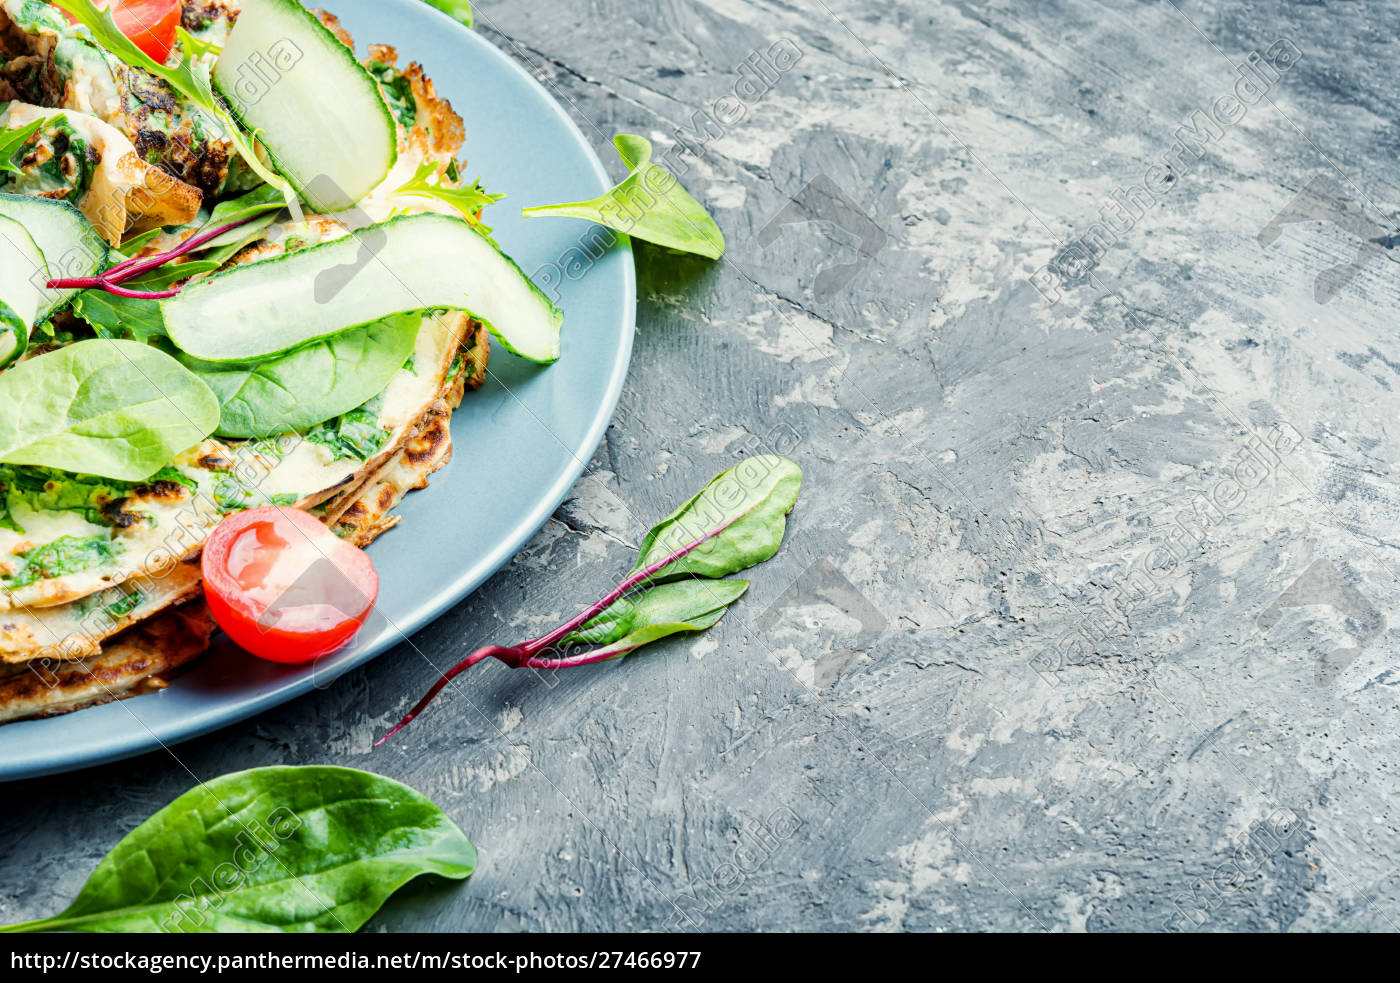 homemade, pancakes, with, herbs - 27466977